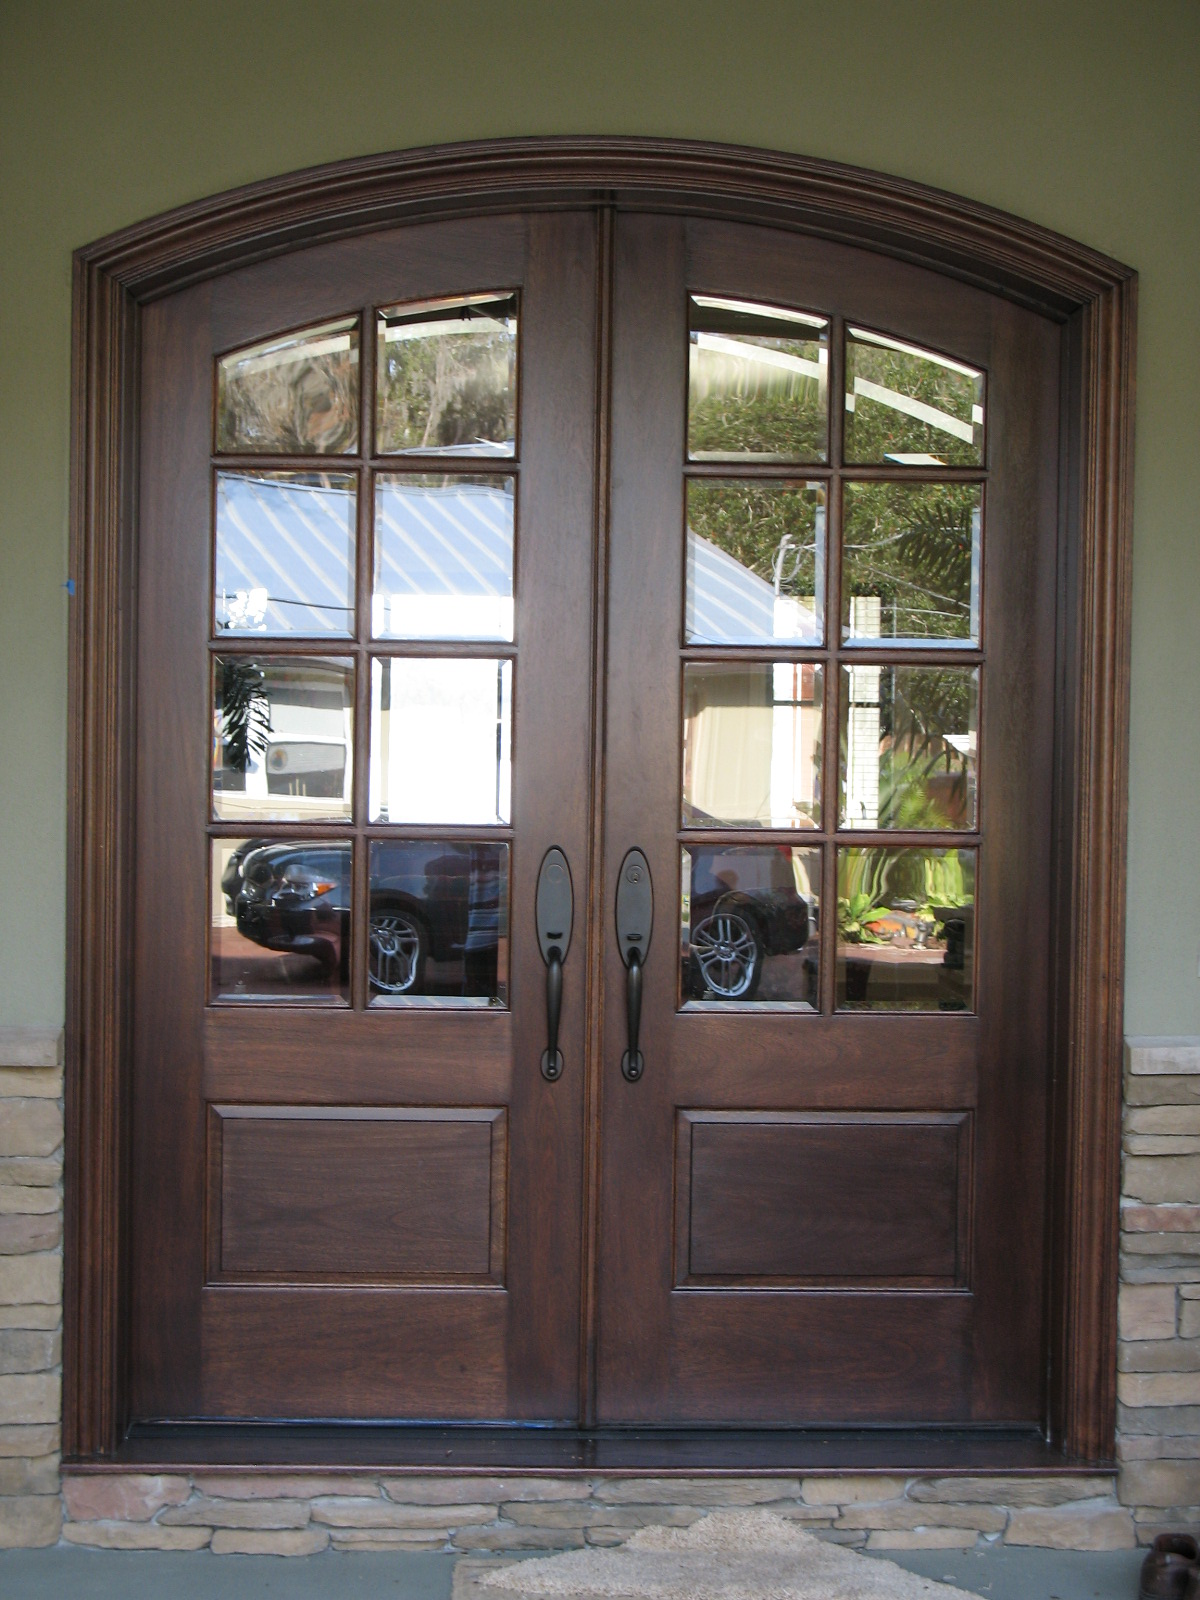 Very Best Exterior Double Wood French Doors with Glass 1200 x 1600 · 520 kB · jpeg